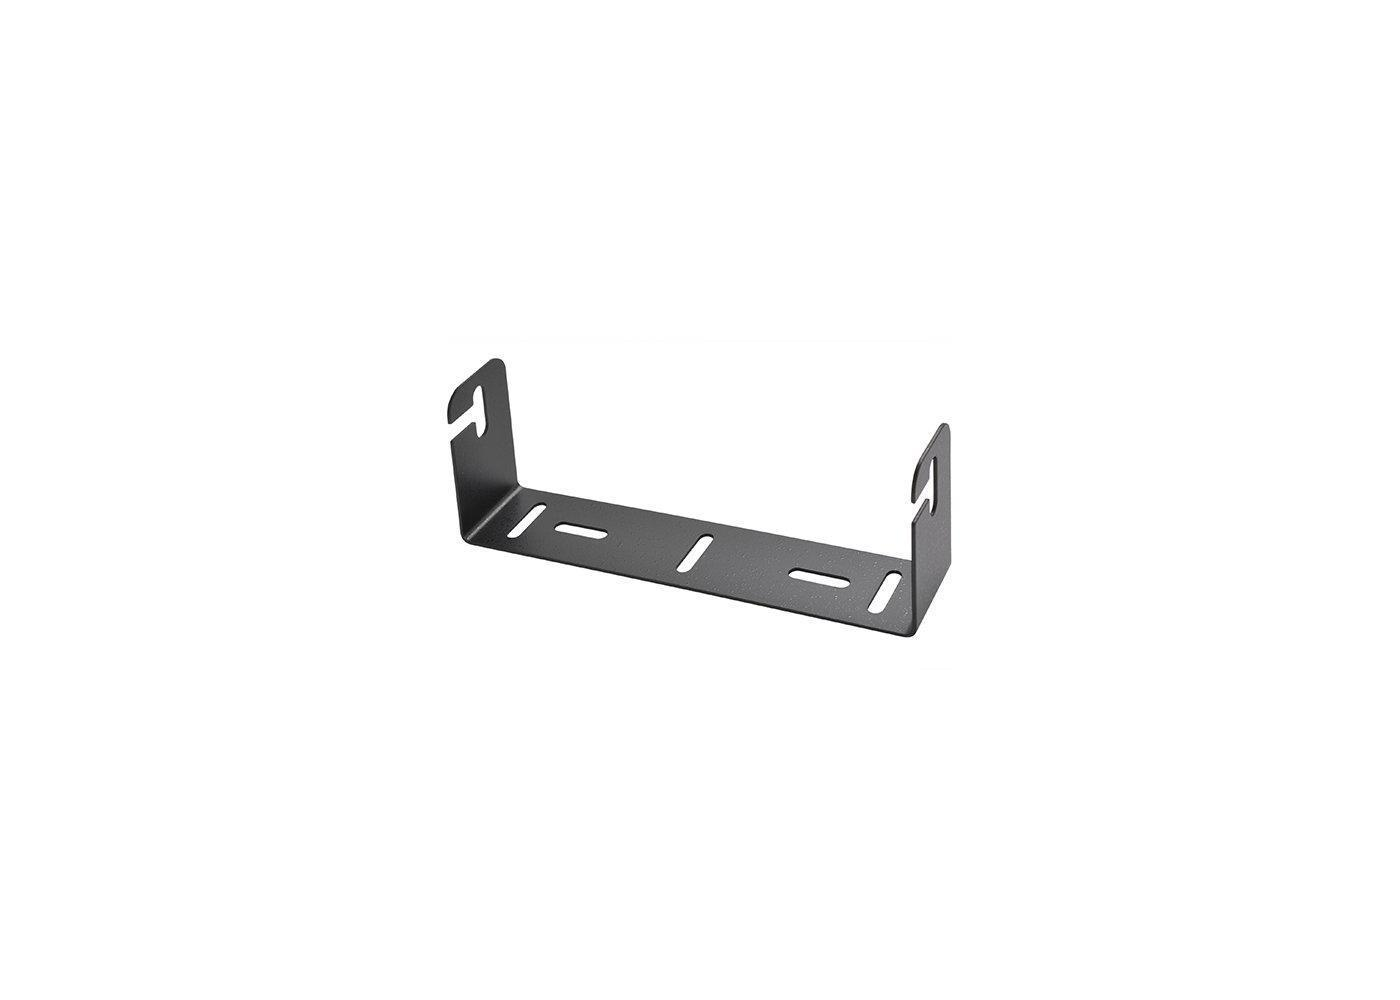 Mounting Bracket for 18 WX ST II - cobra.com